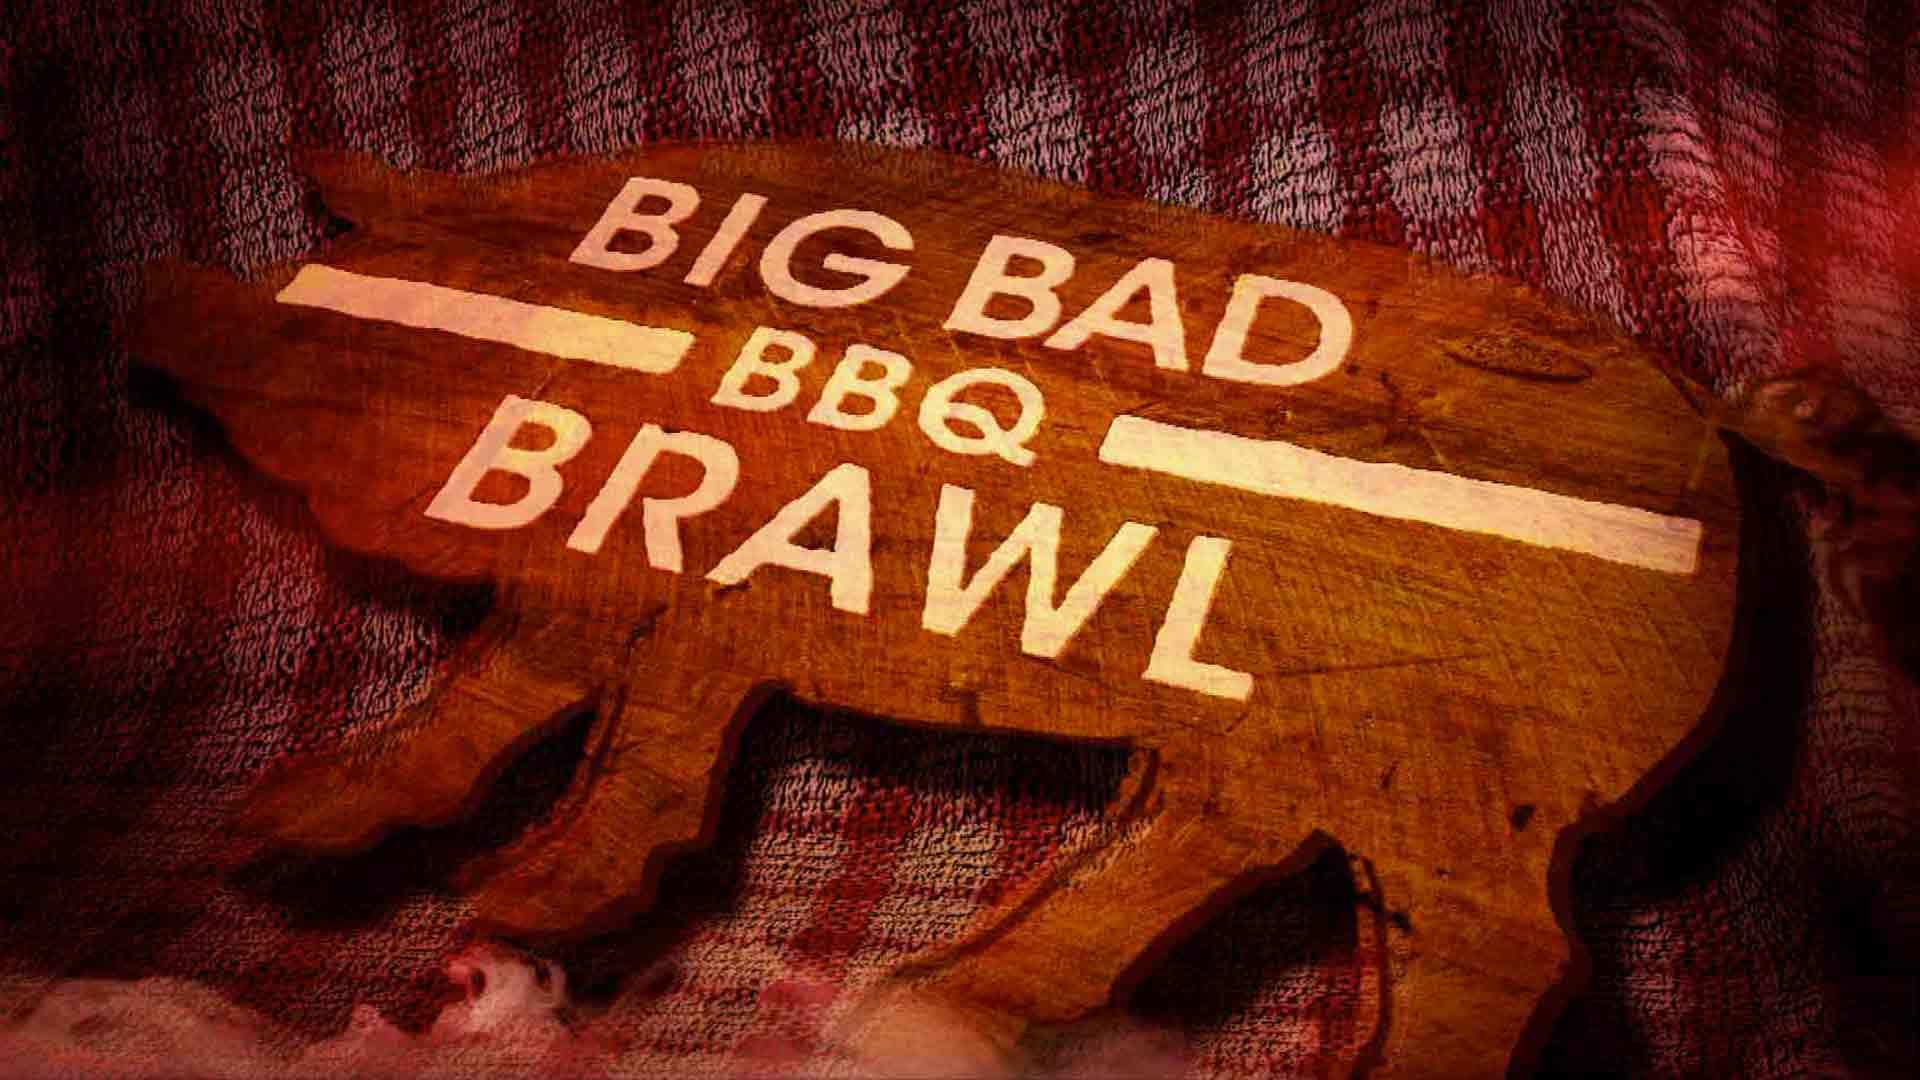 Big Bad BBQ Brawl Logo